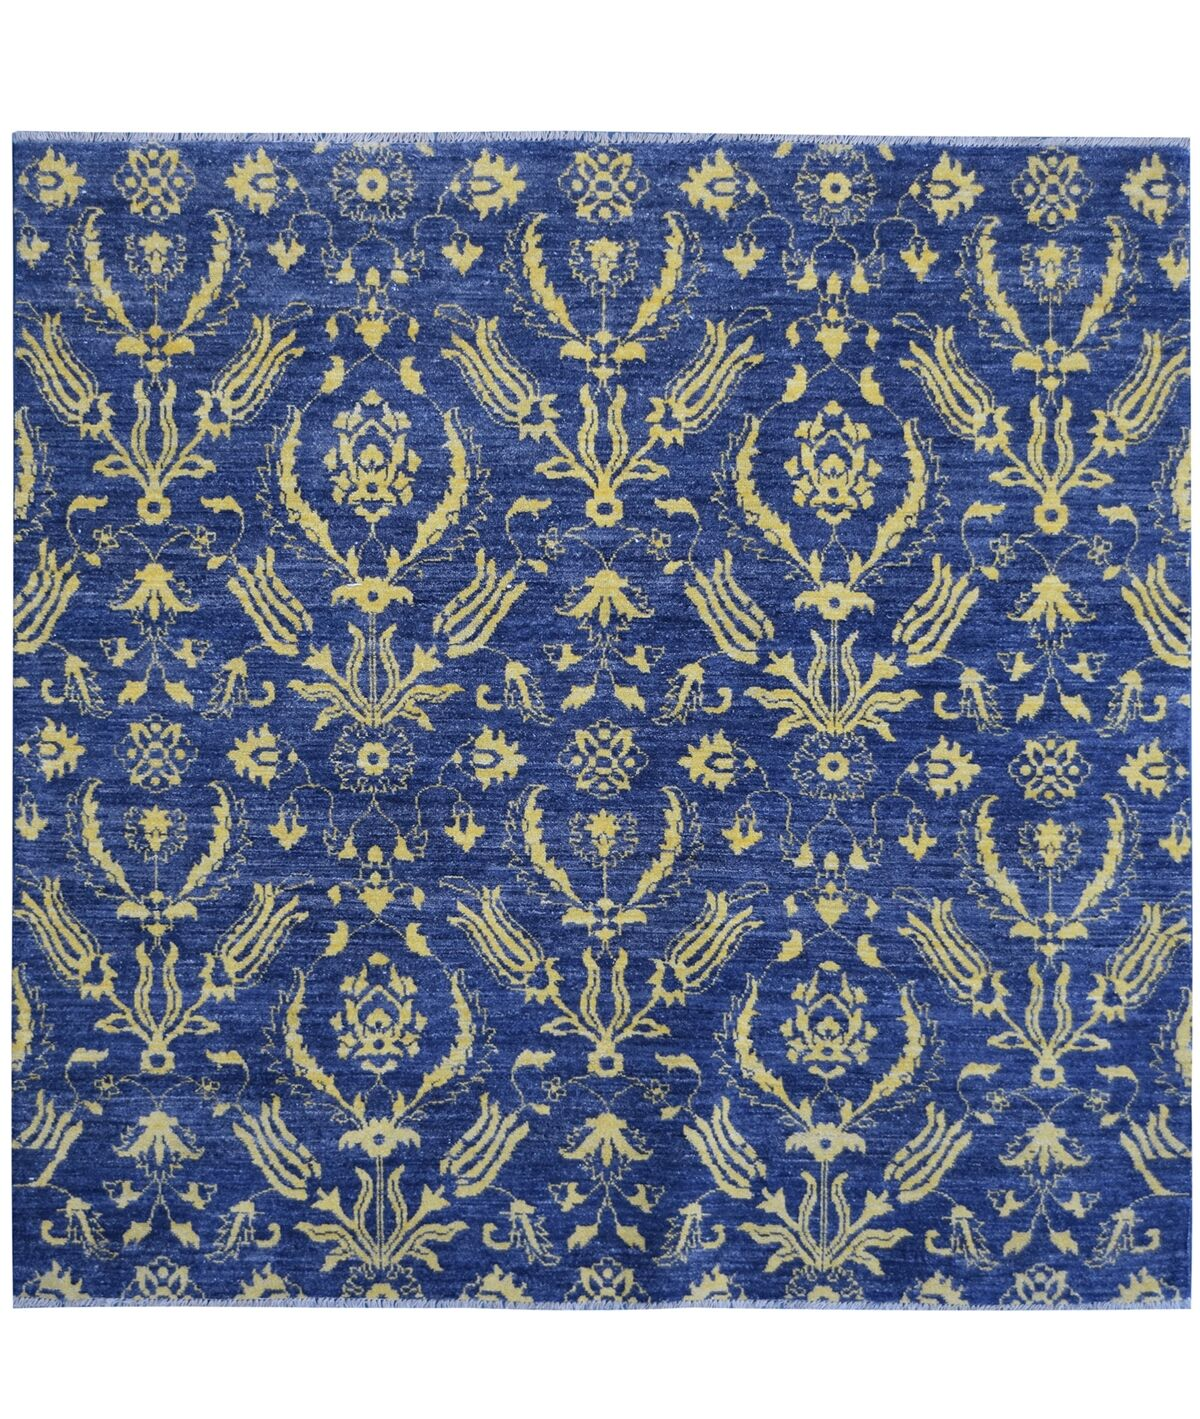 Hand-Knotted Blue/Yellow Area Rug